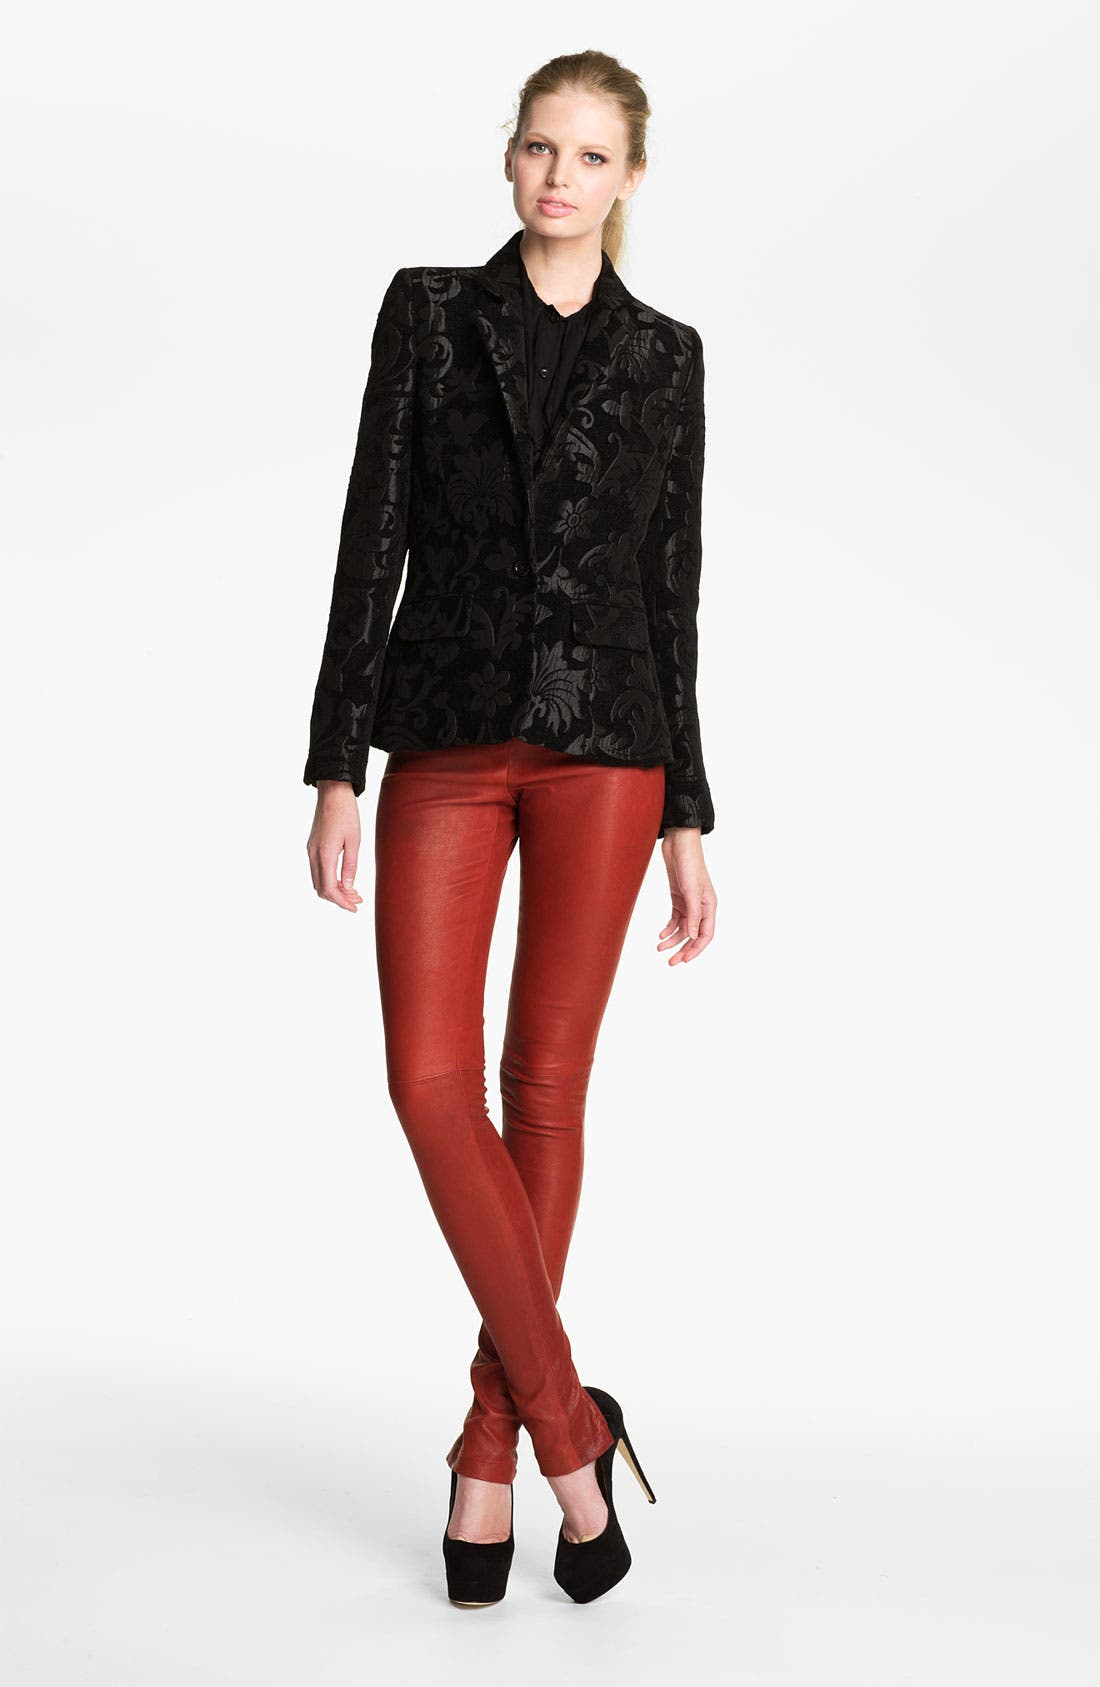 Alternate Image 1 Selected - Alice + Olivia 'Elyse' Metallic Brocade Blazer